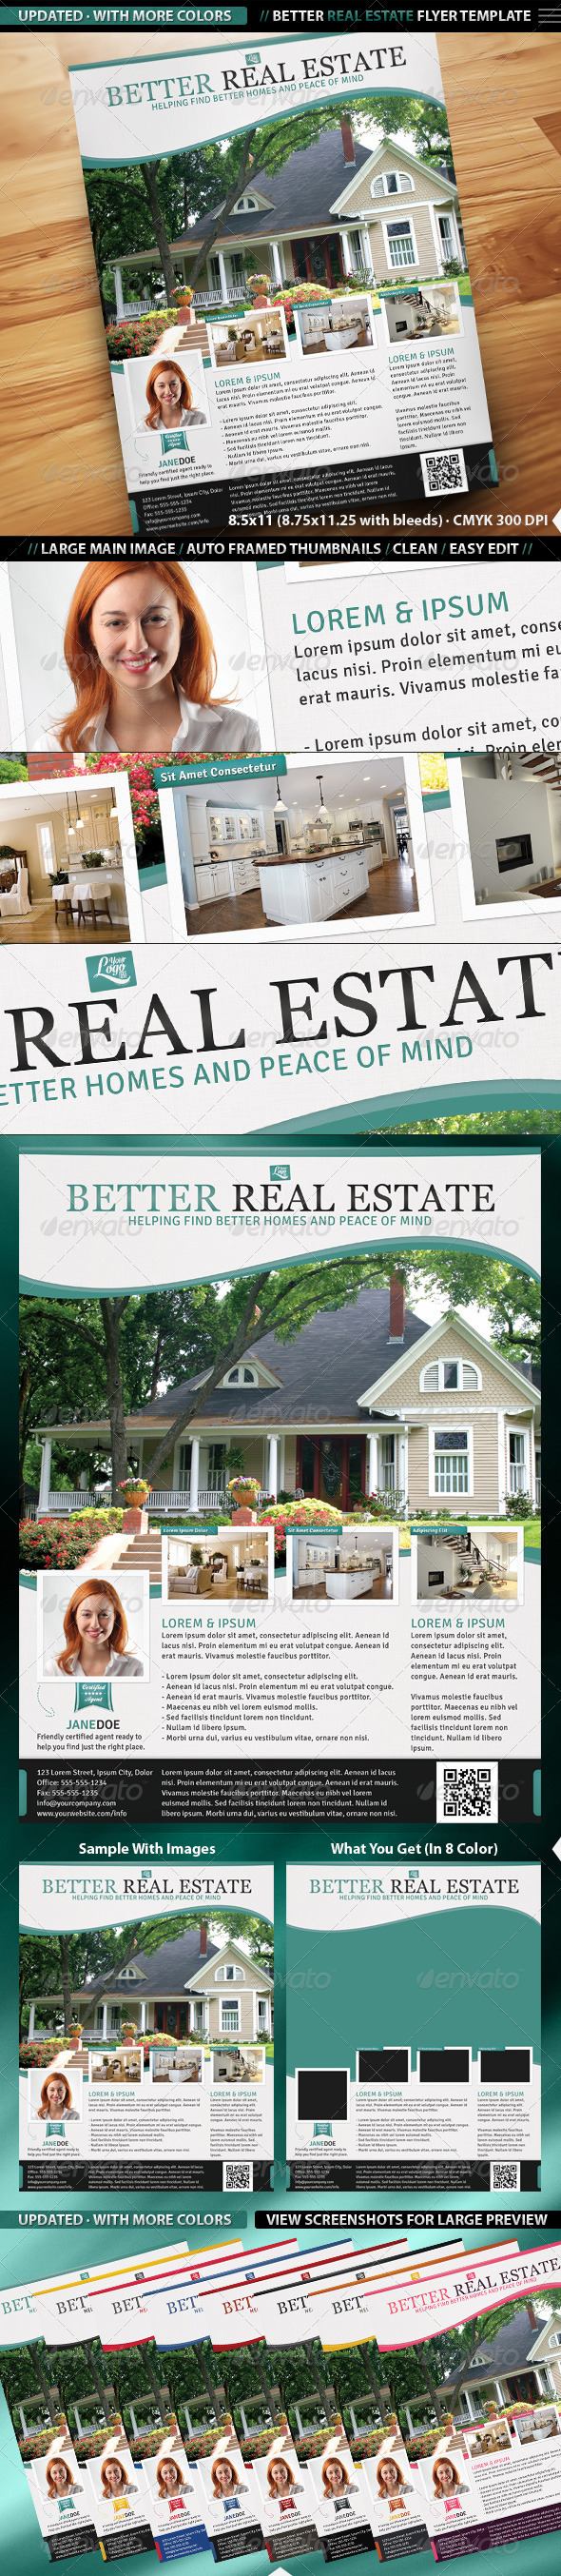 Better Real Estate Flyer Template - Corporate Flyers